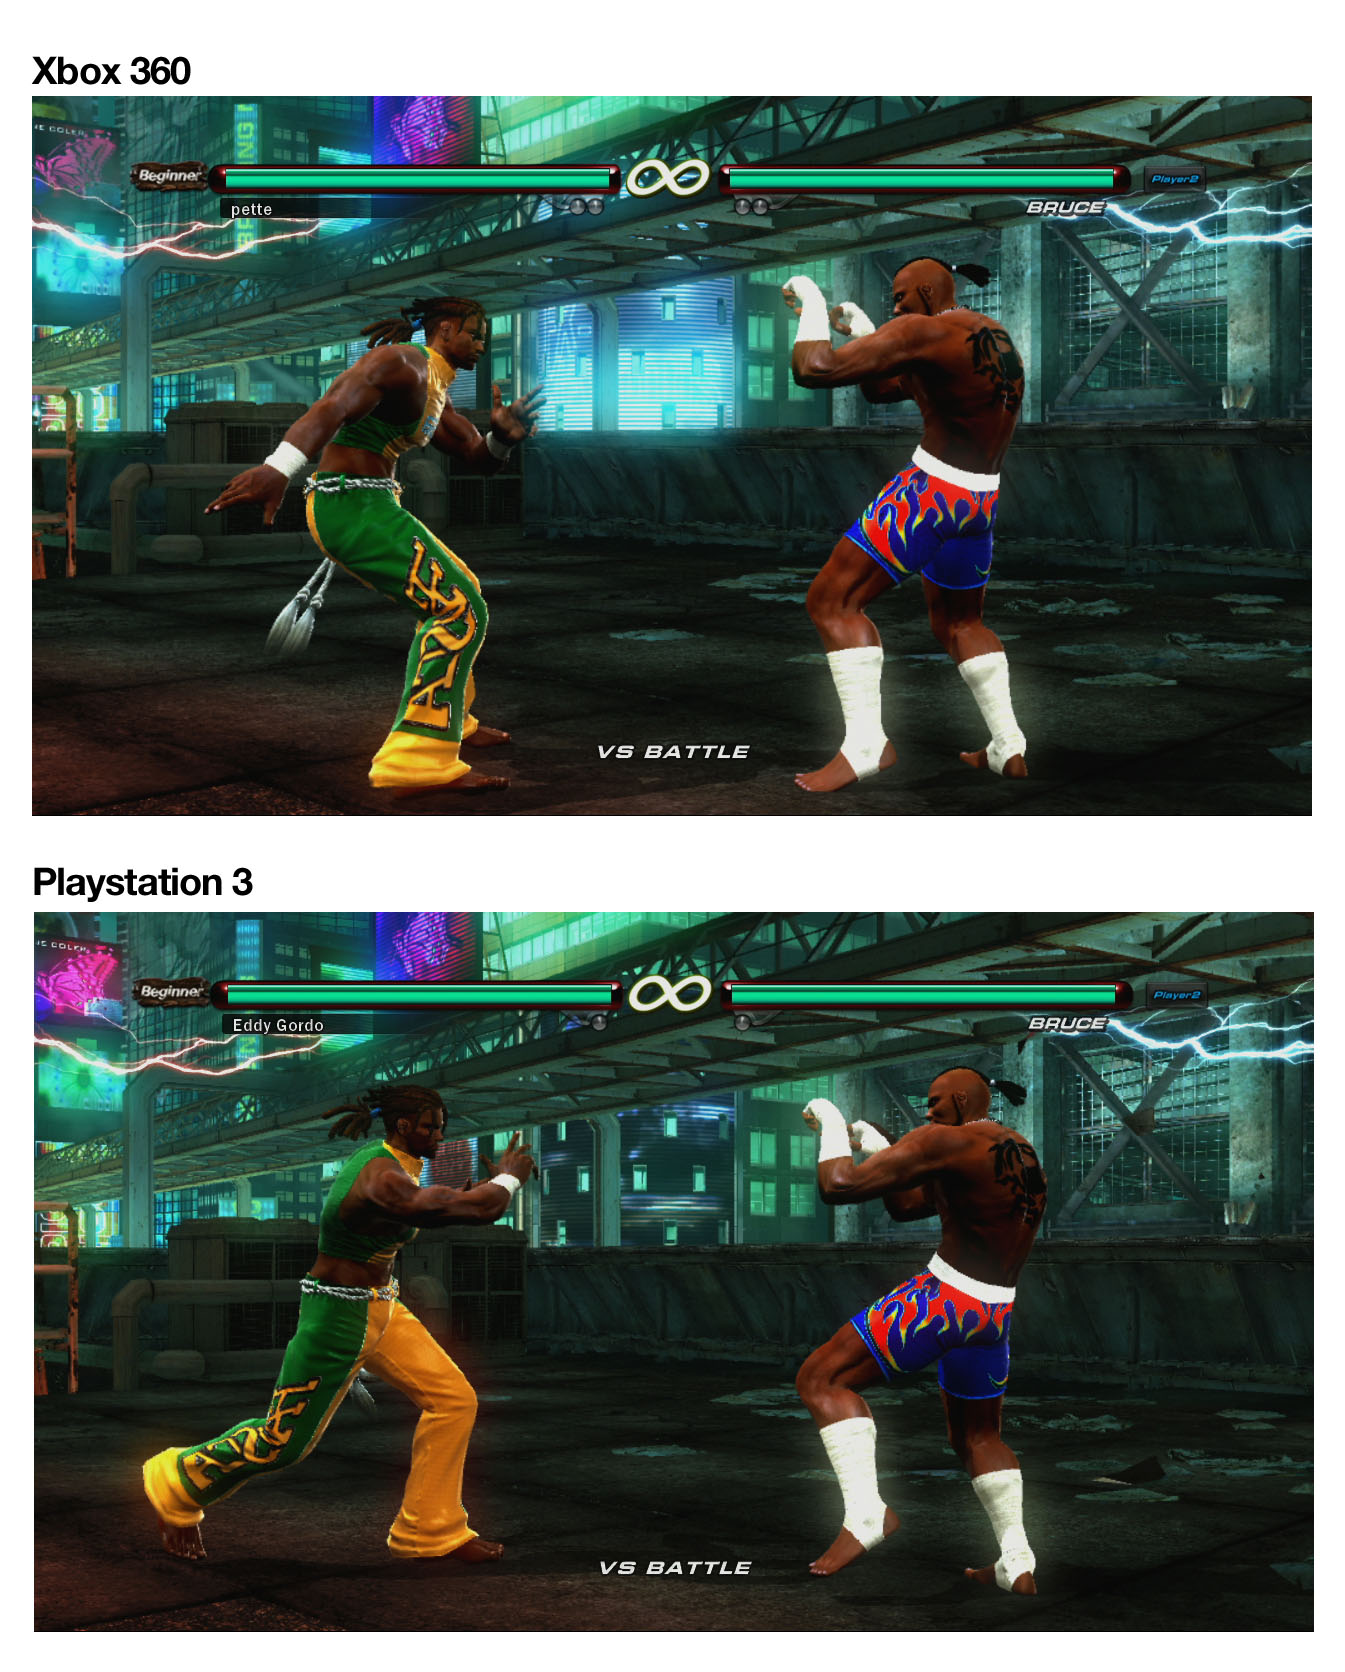 console has the best graphics for Tekken 6: Playstation 3 or Xbox 360